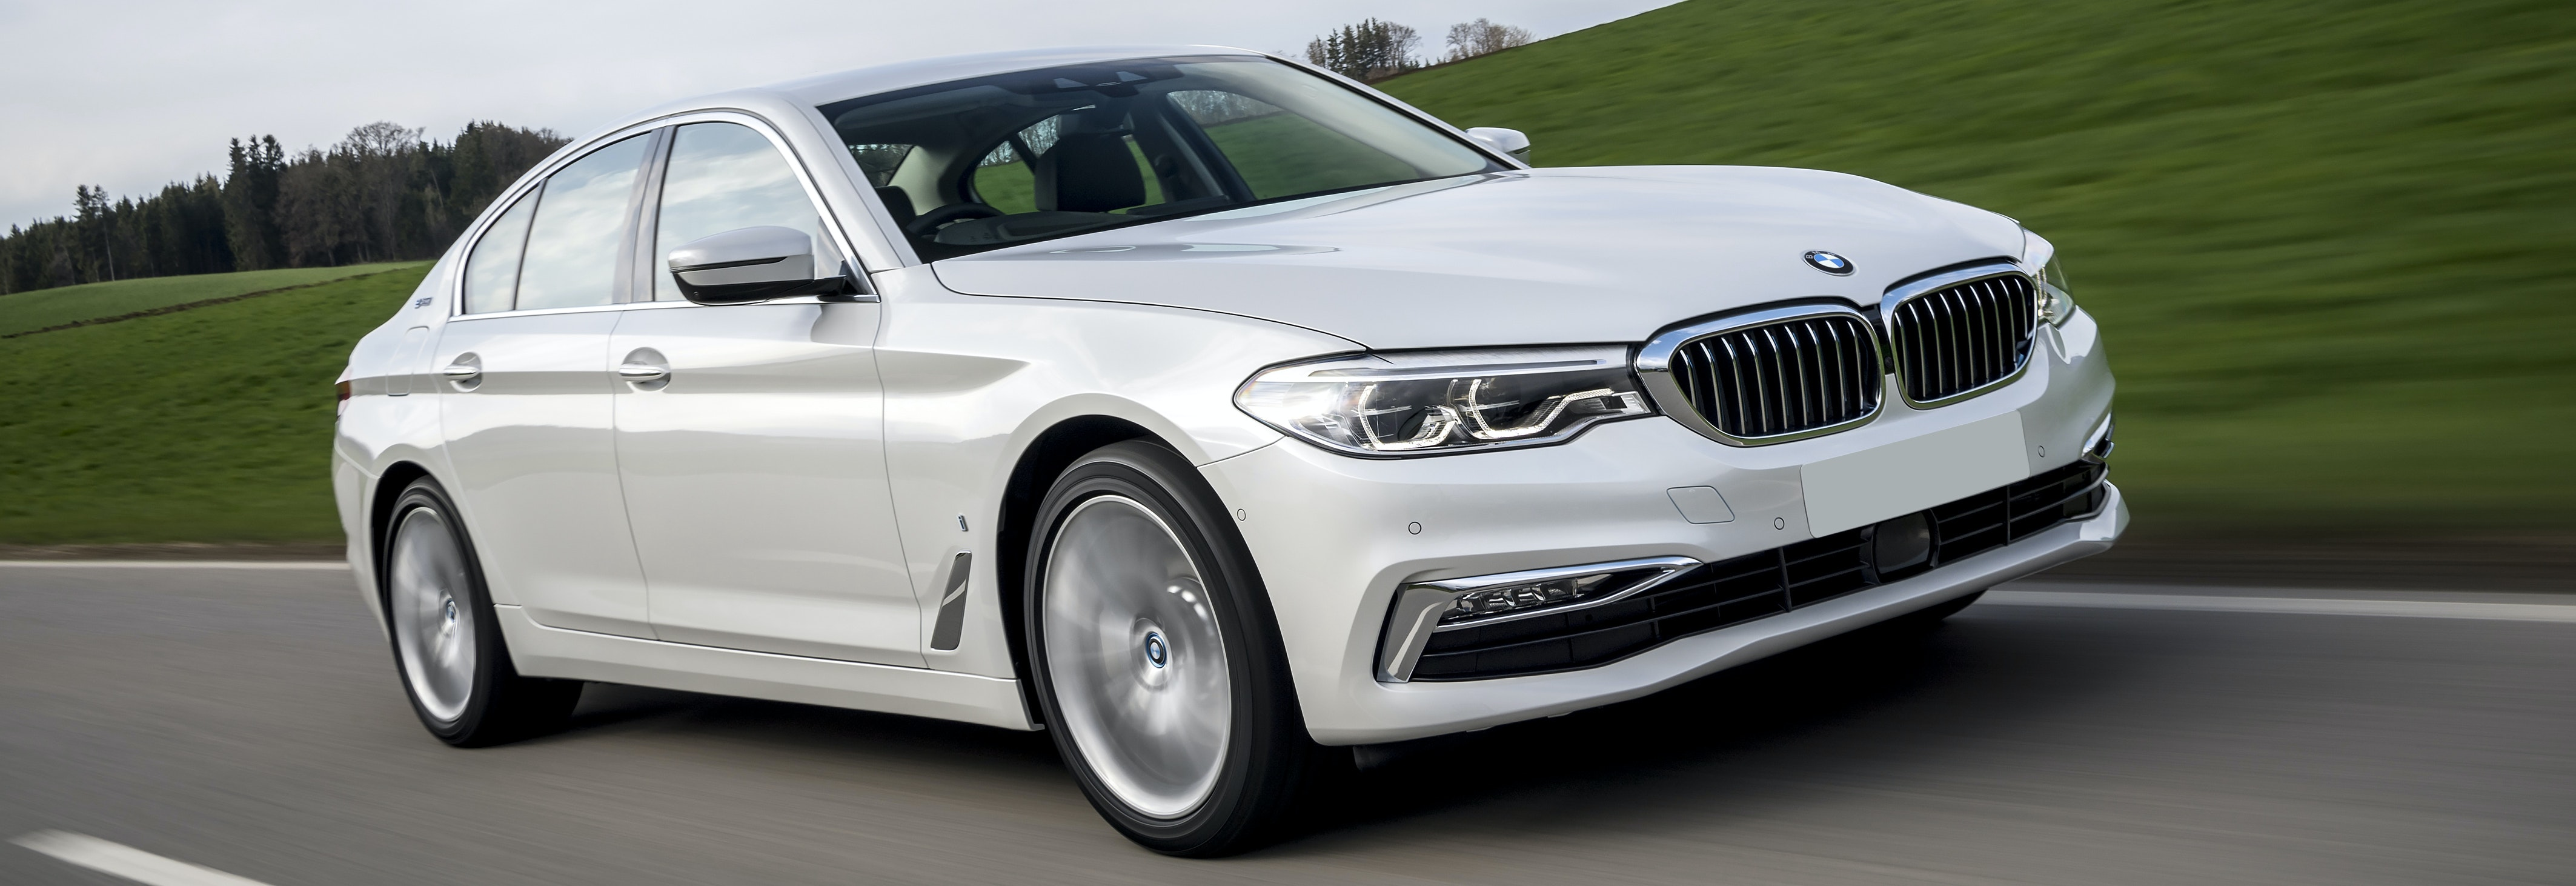 2018 bmw 5 series hybrid white driving front